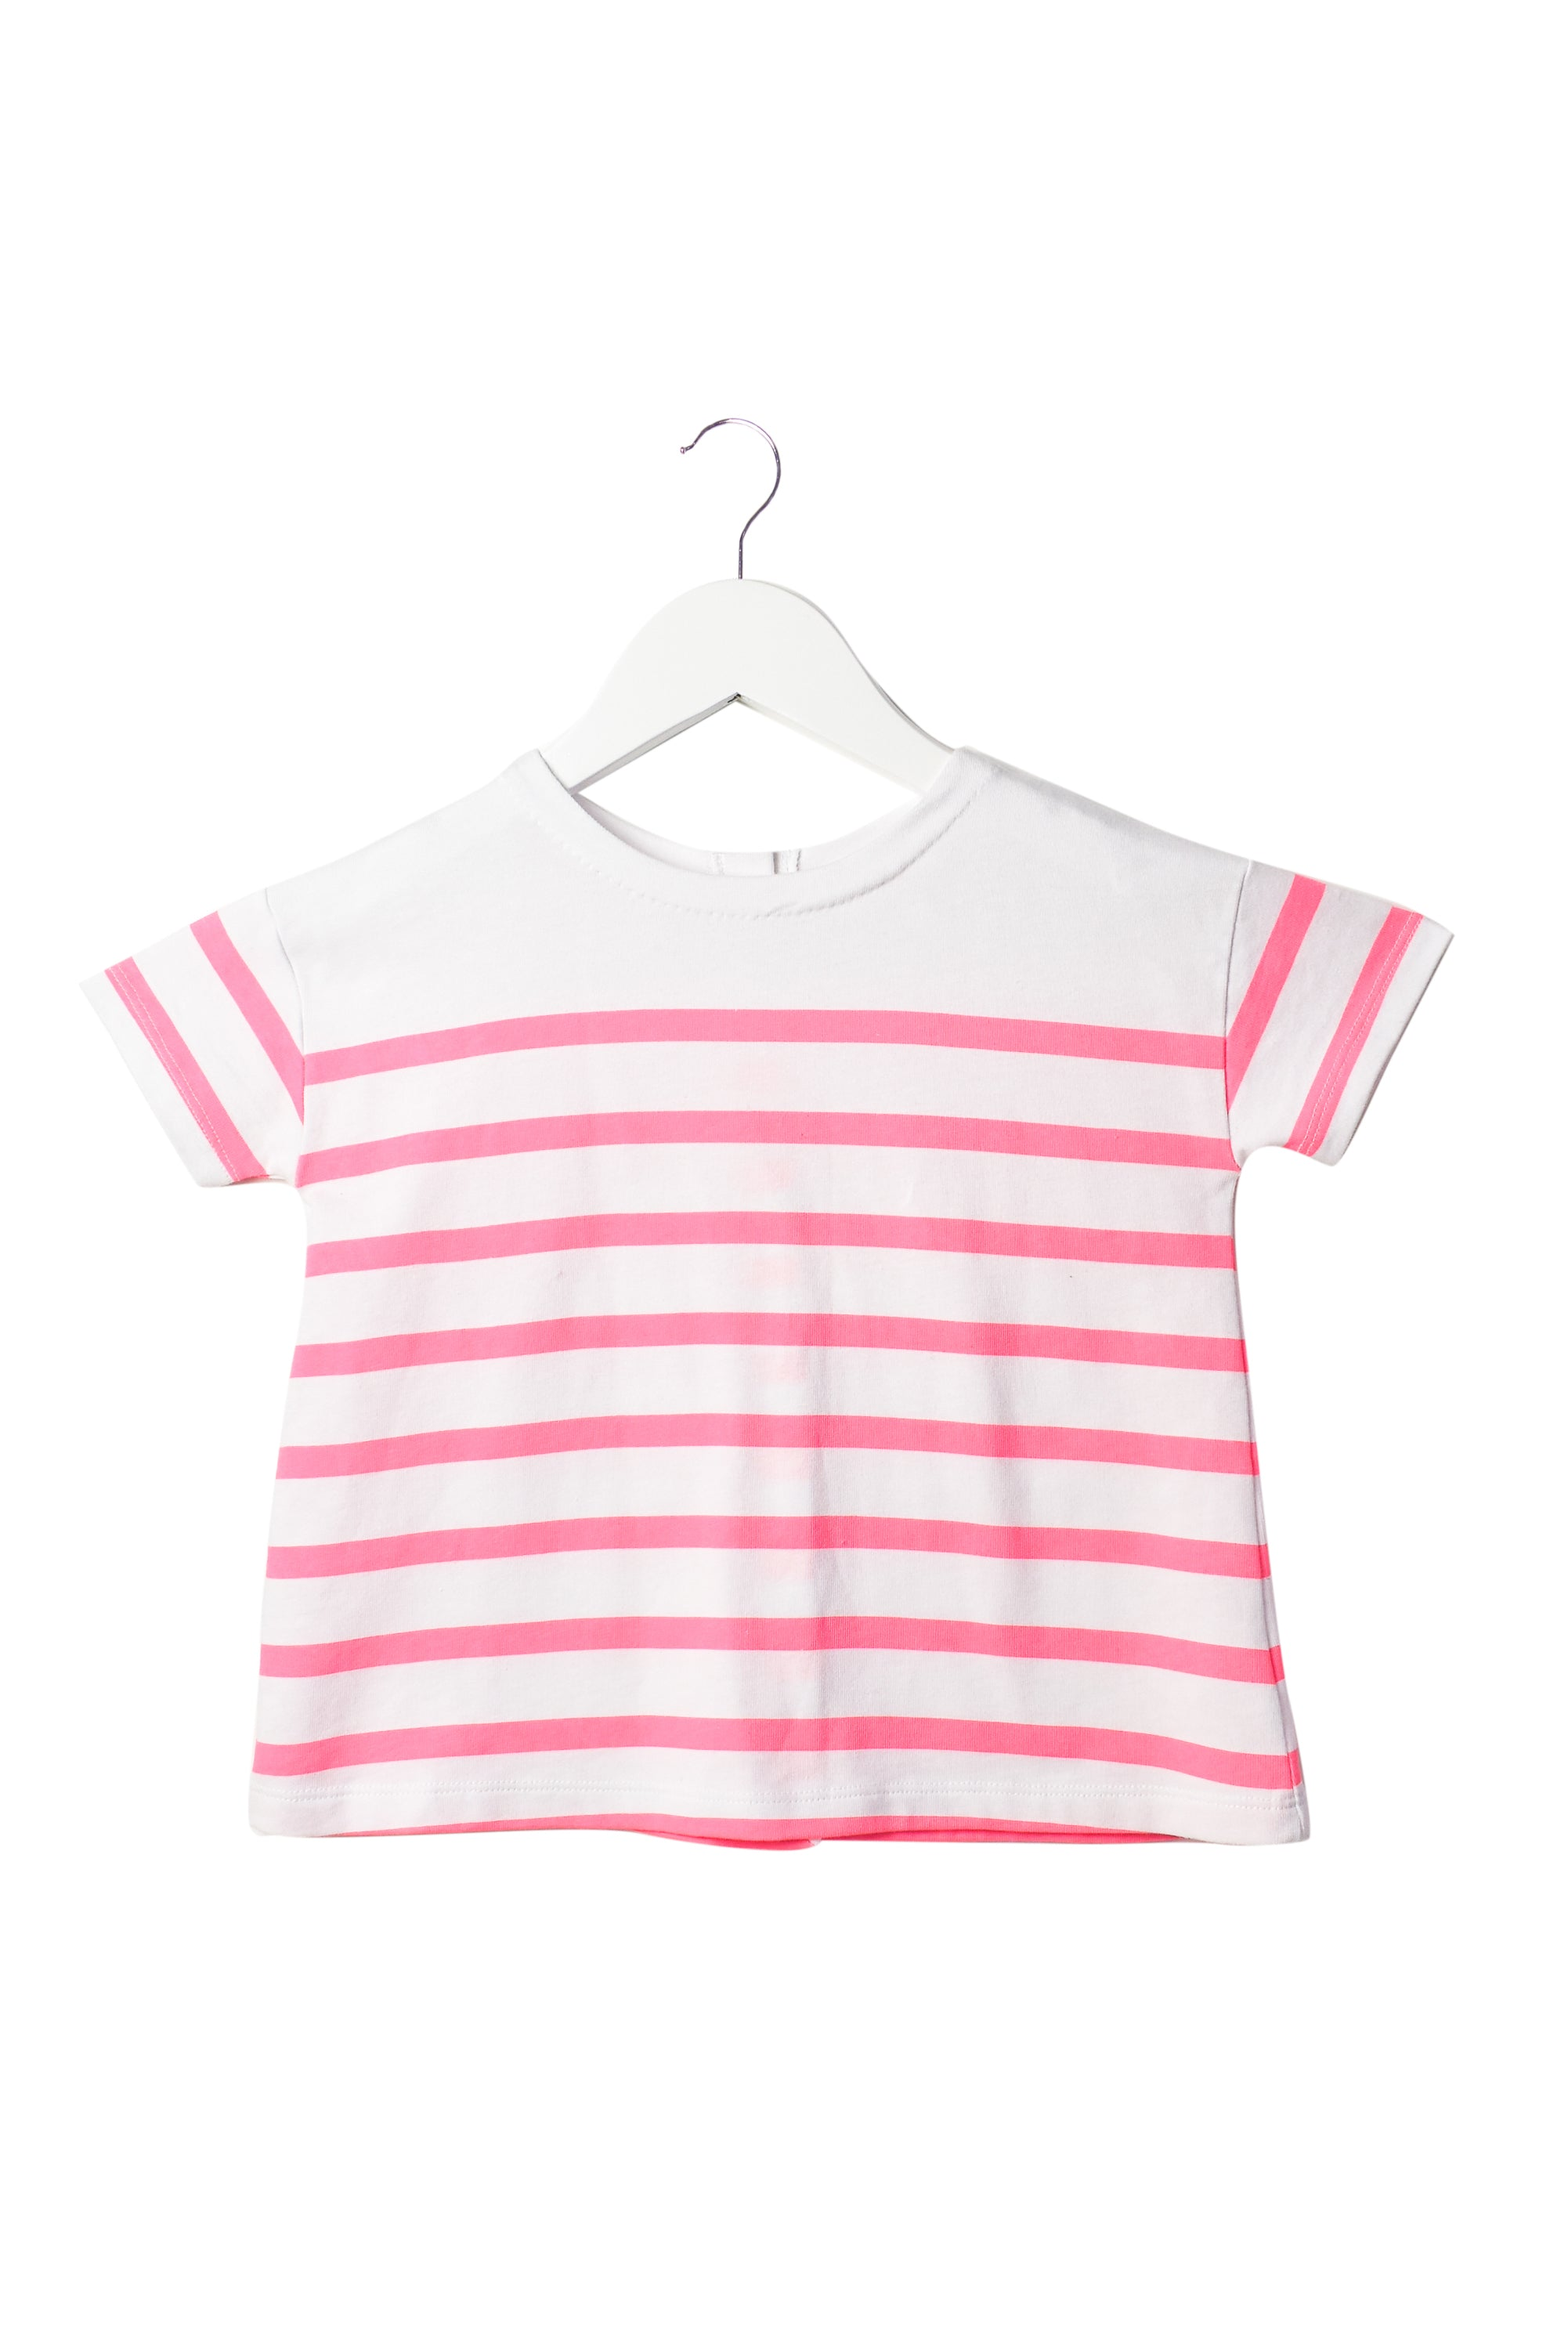 10006566 Seed Kids~T-Shirt 4T at Retykle